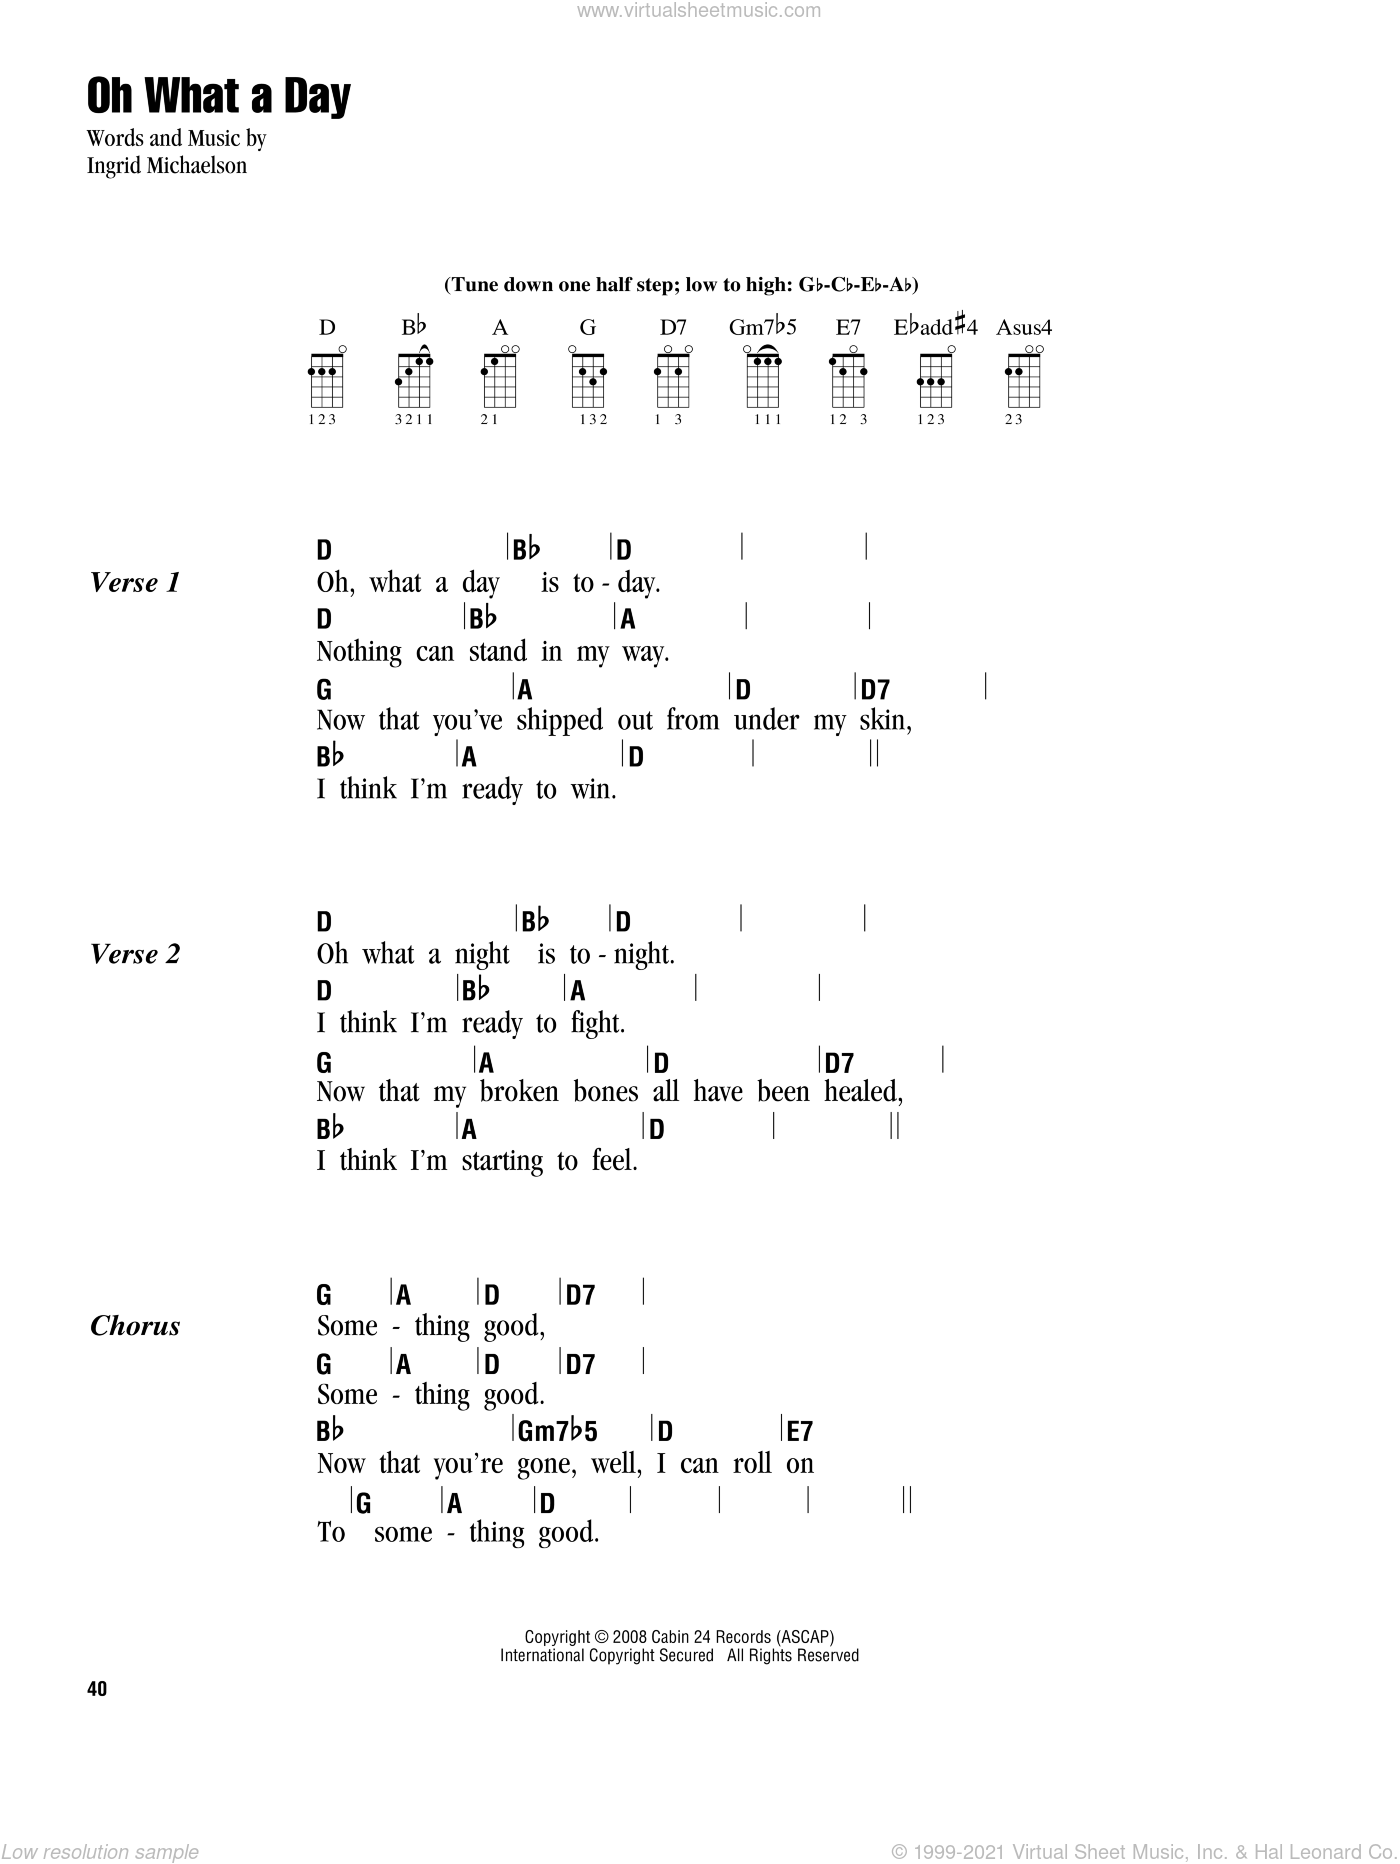 Michaelson - Oh What A Day sheet music for ukulele (chords) [PDF]